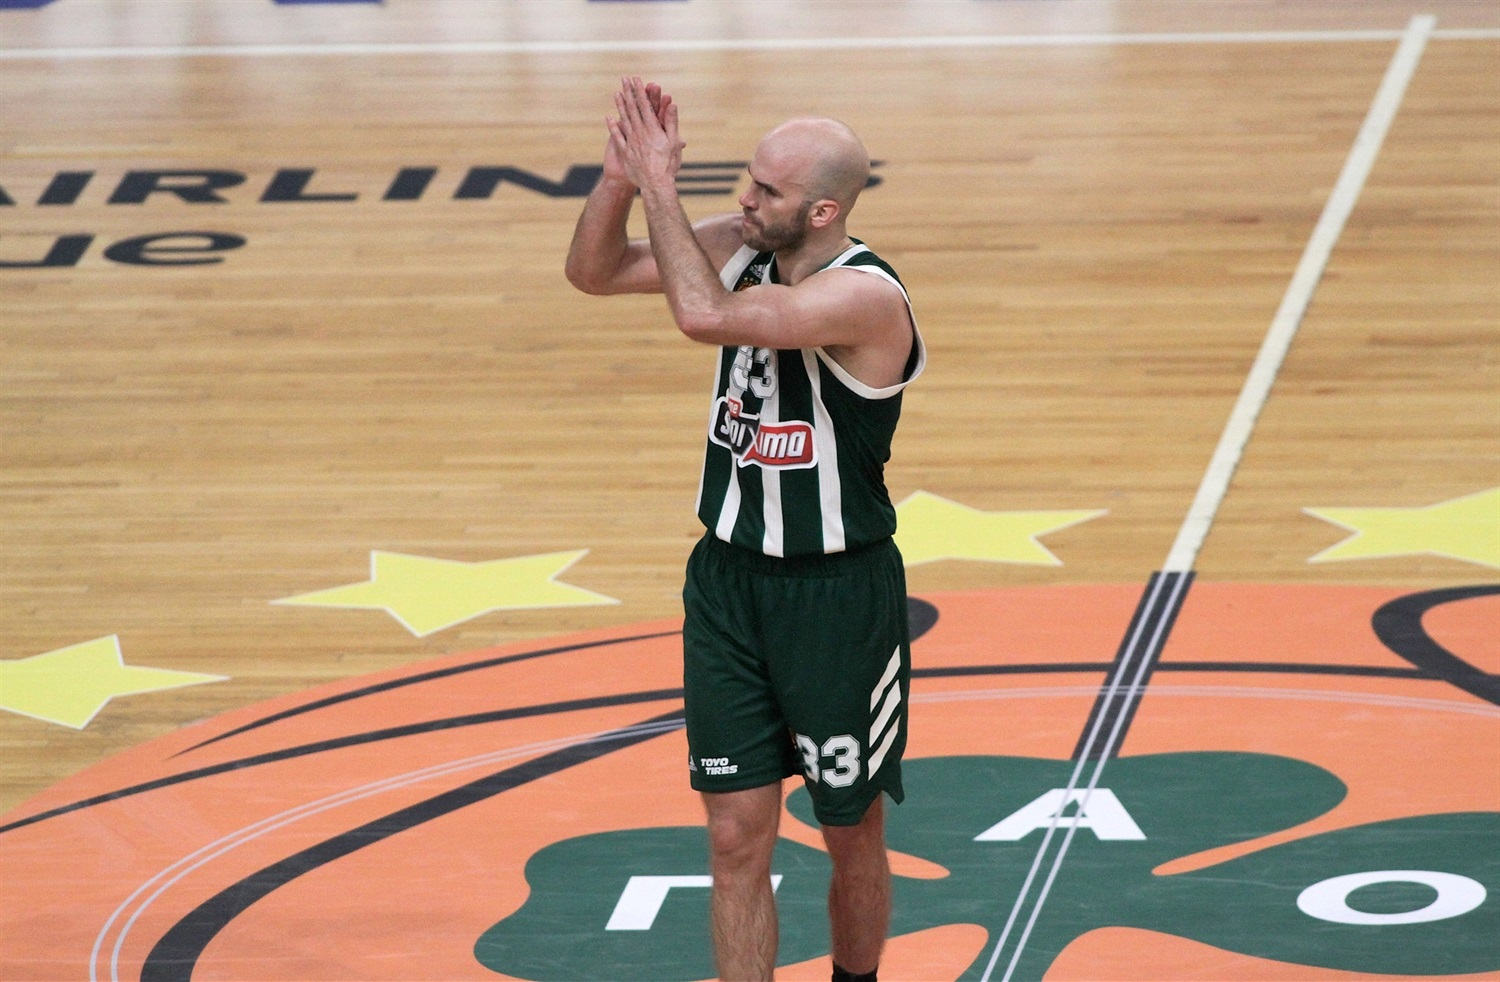 Nick Calathes celebrates - Panathinaikos OPAP Athens - EB18